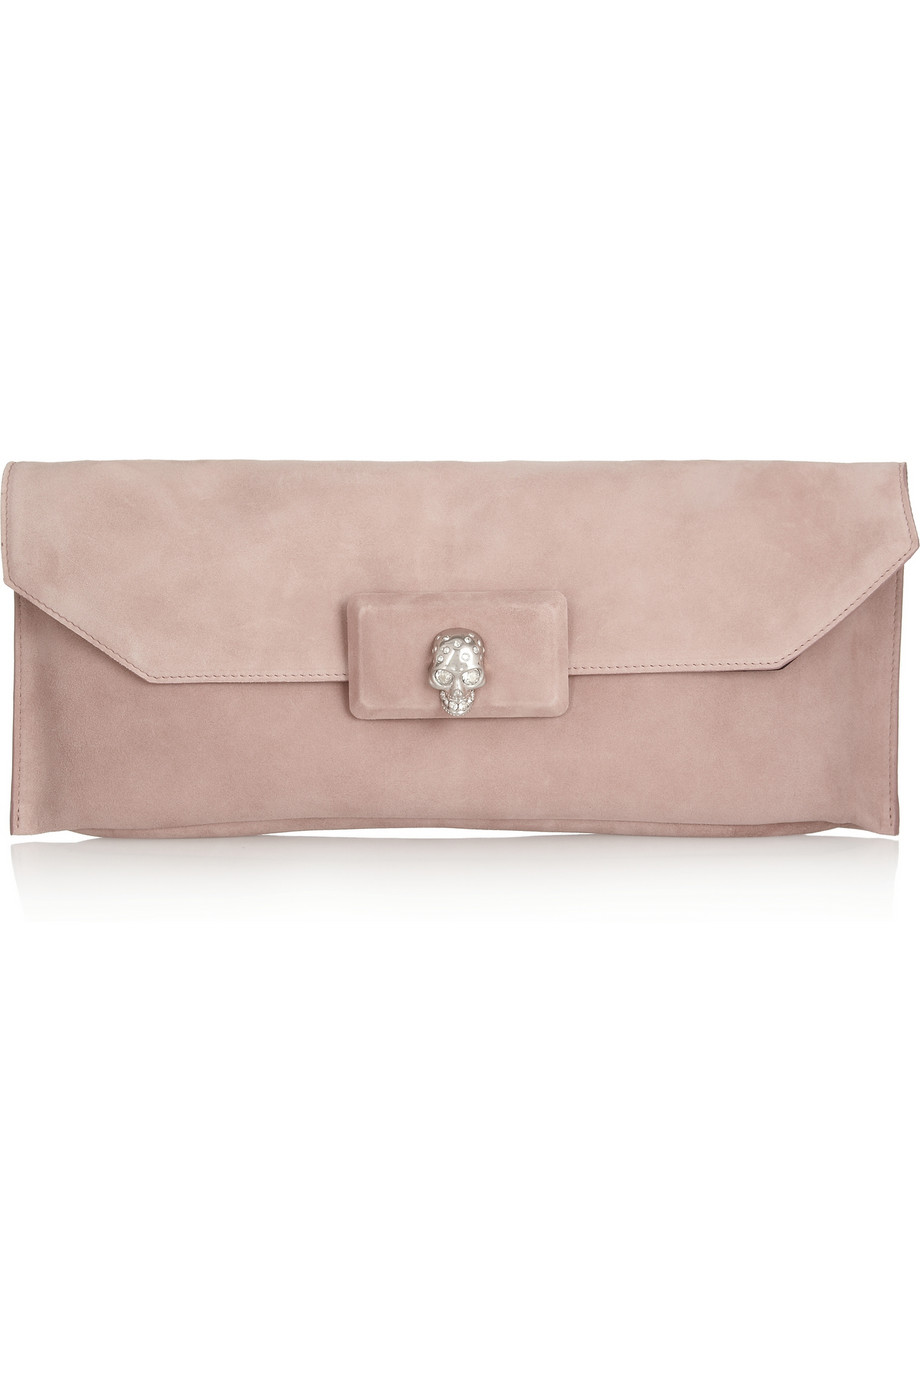 Embellished leather clutch Alexander McQueen P8P7qDexI